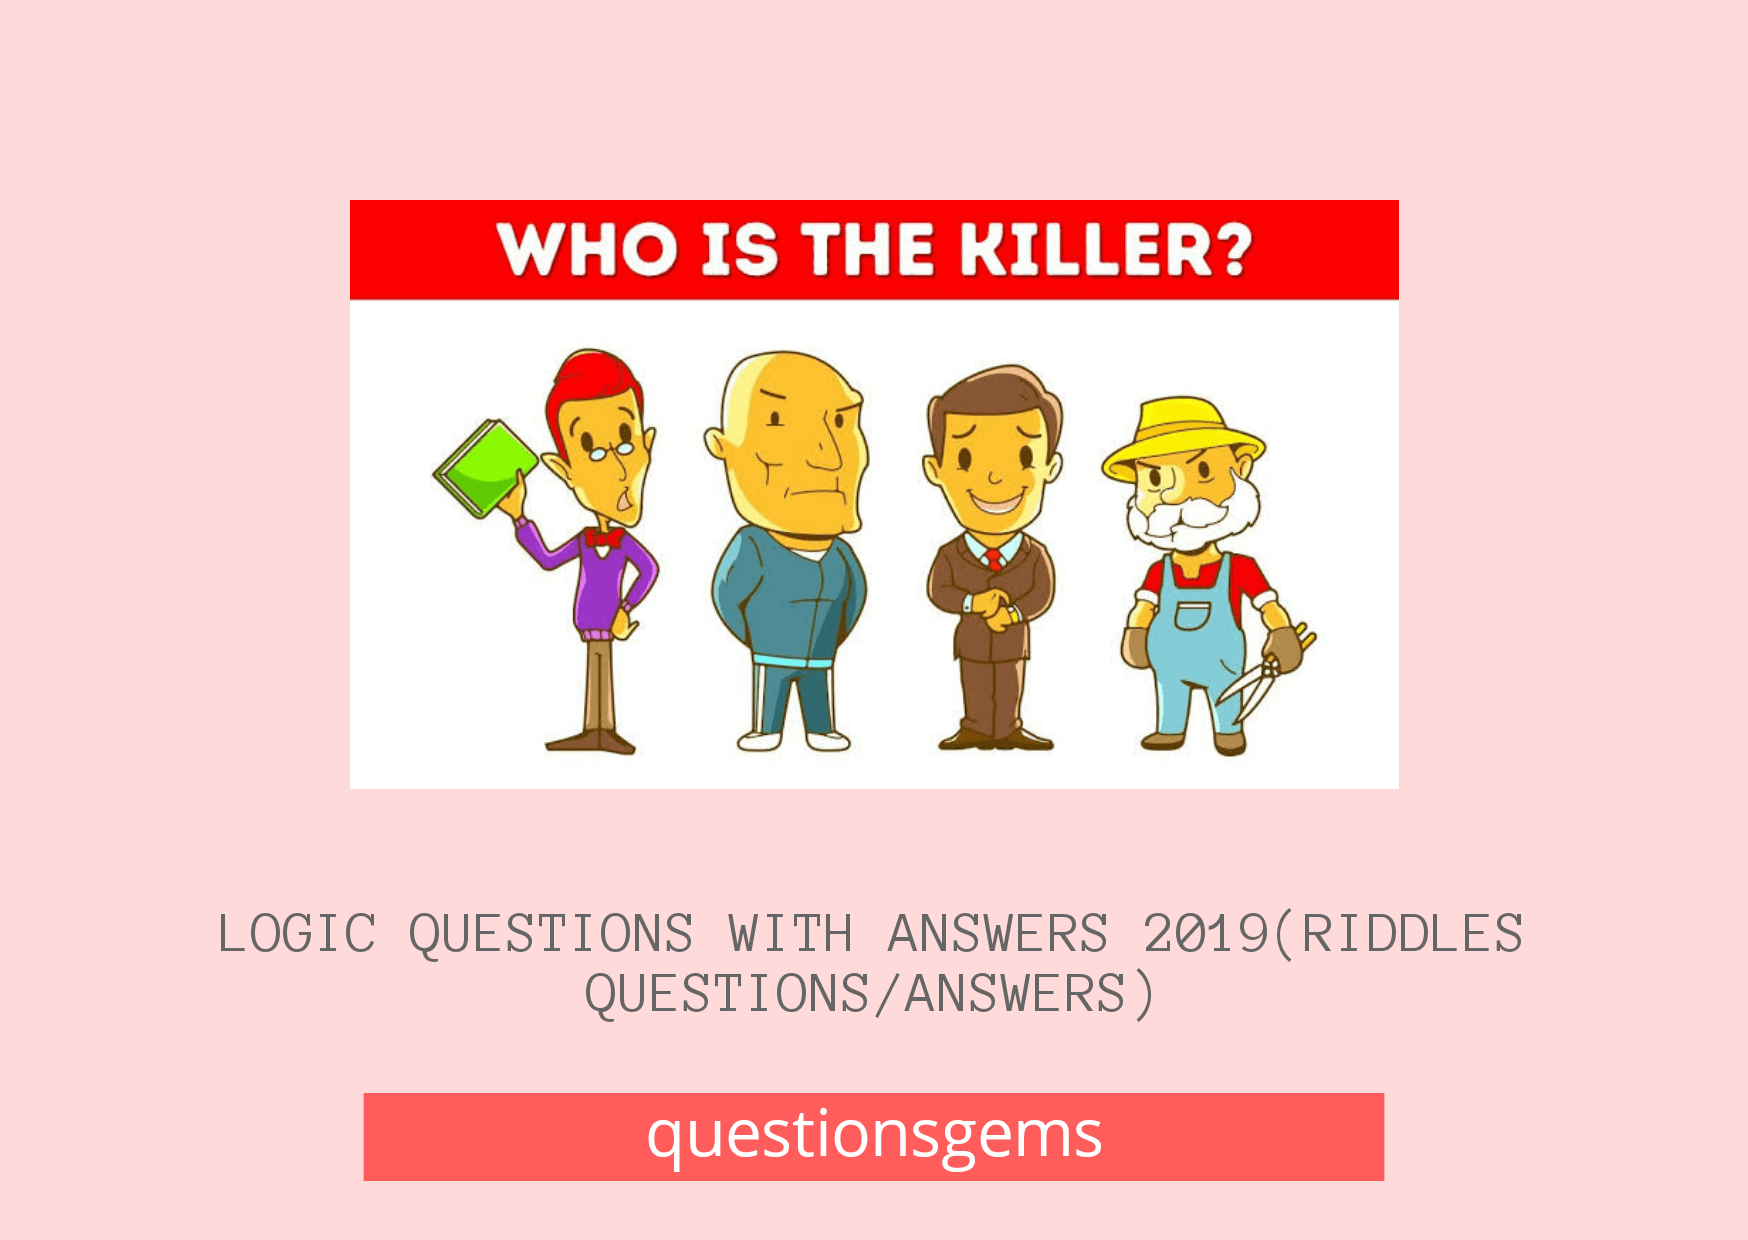 Logic Questions With Answers 2019